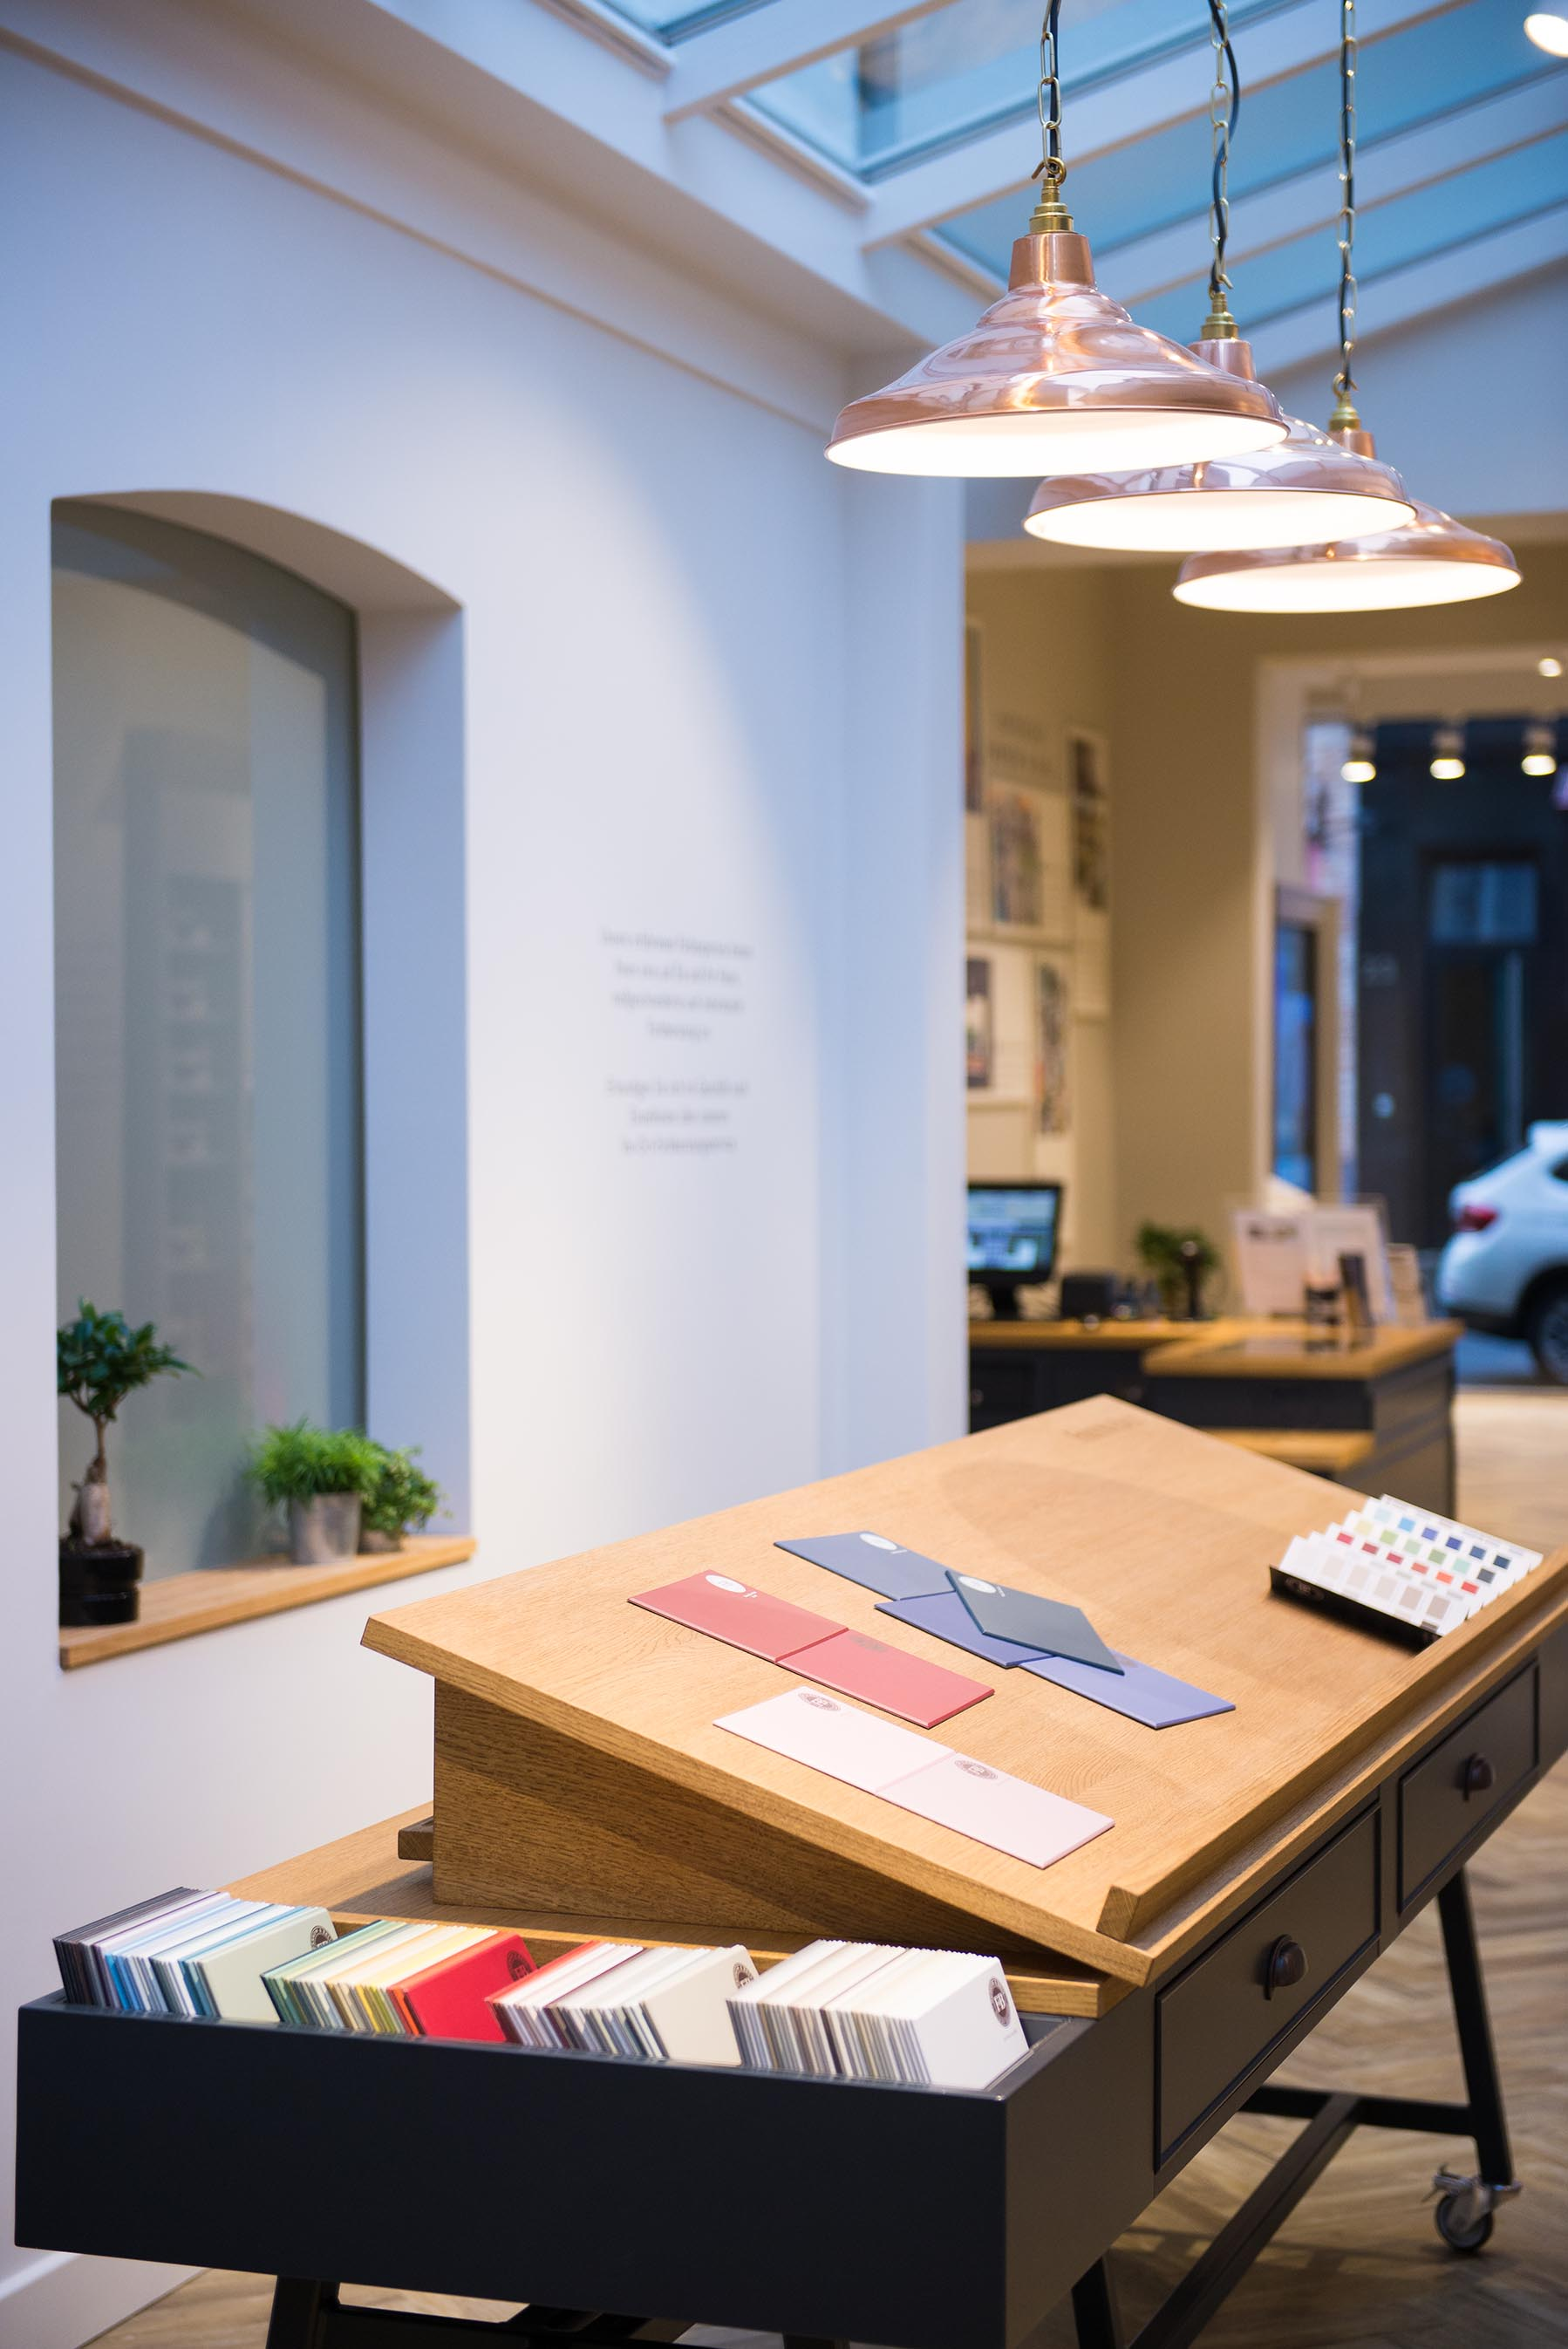 Paint Sample Desk at Farrow & Ball